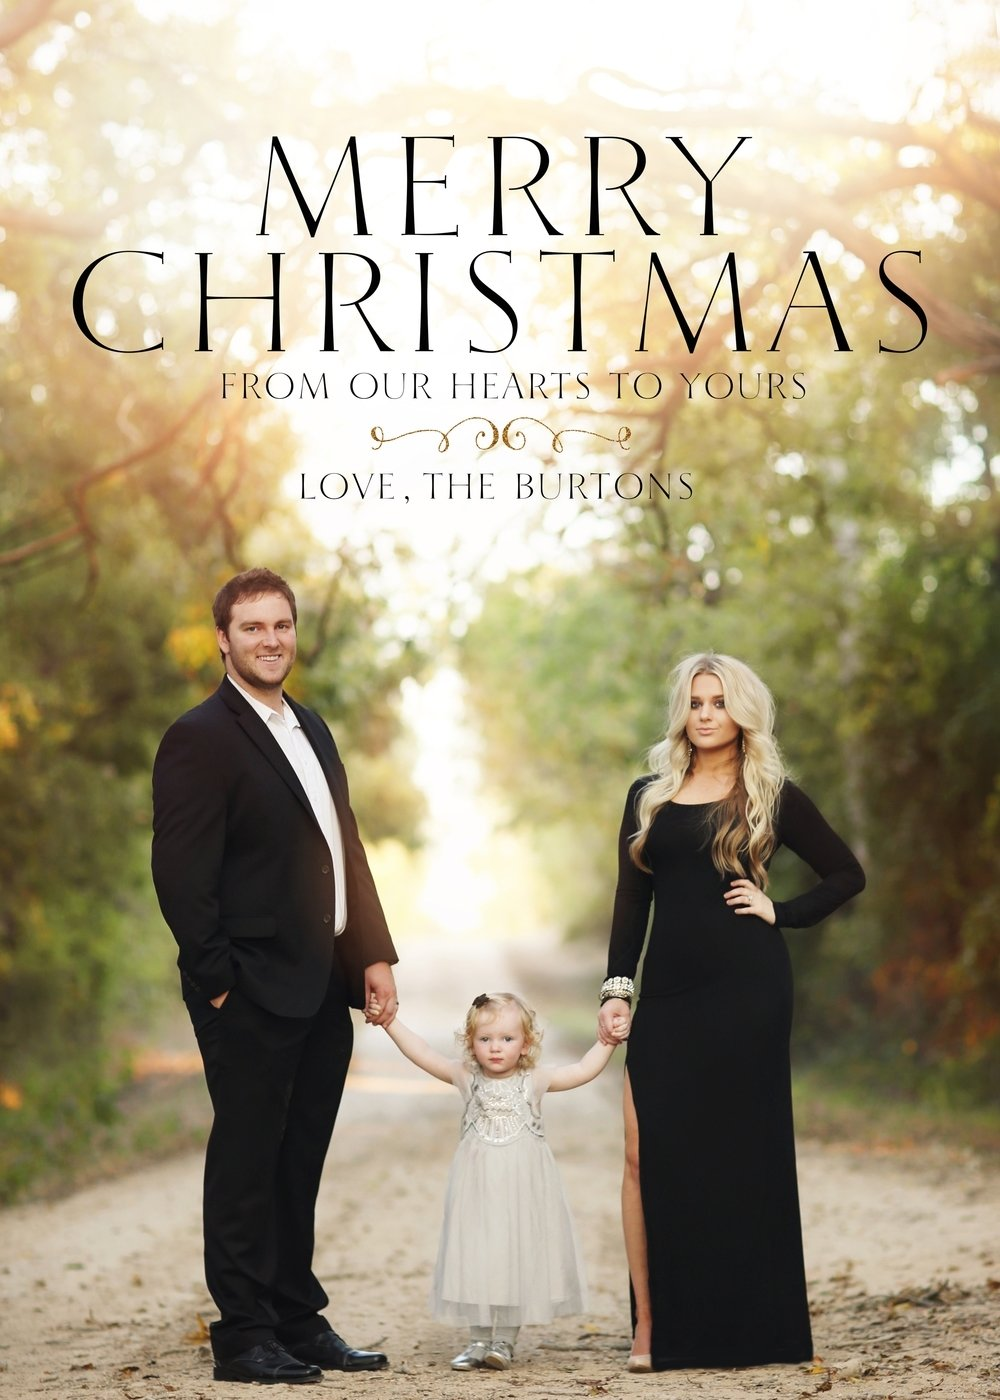 10 Unique Family Christmas Card Picture Ideas glam family christmas card shoot holidaze pinterest family